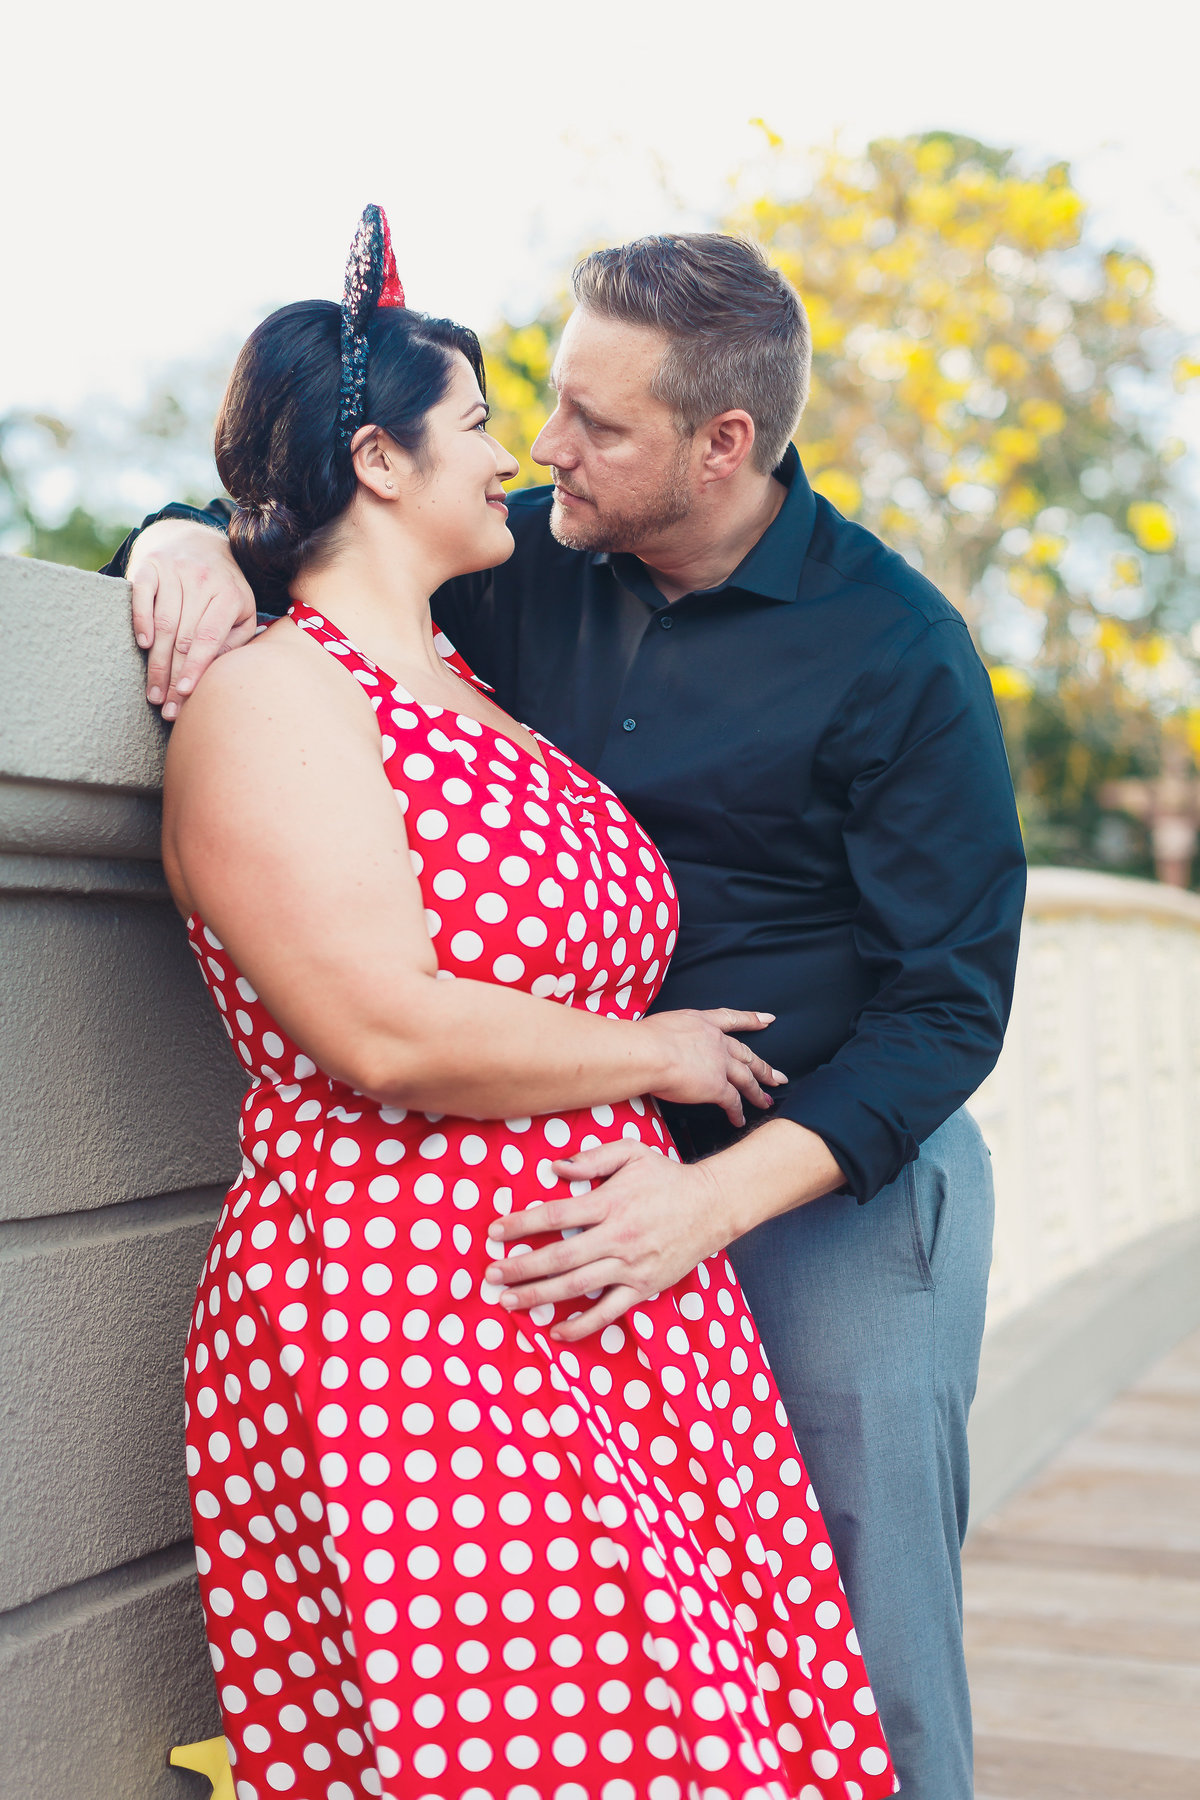 Disney-Bounding-Engagment-Couple-Minnie-Inspo-Orlando-Jessica-Lea-IMG-104